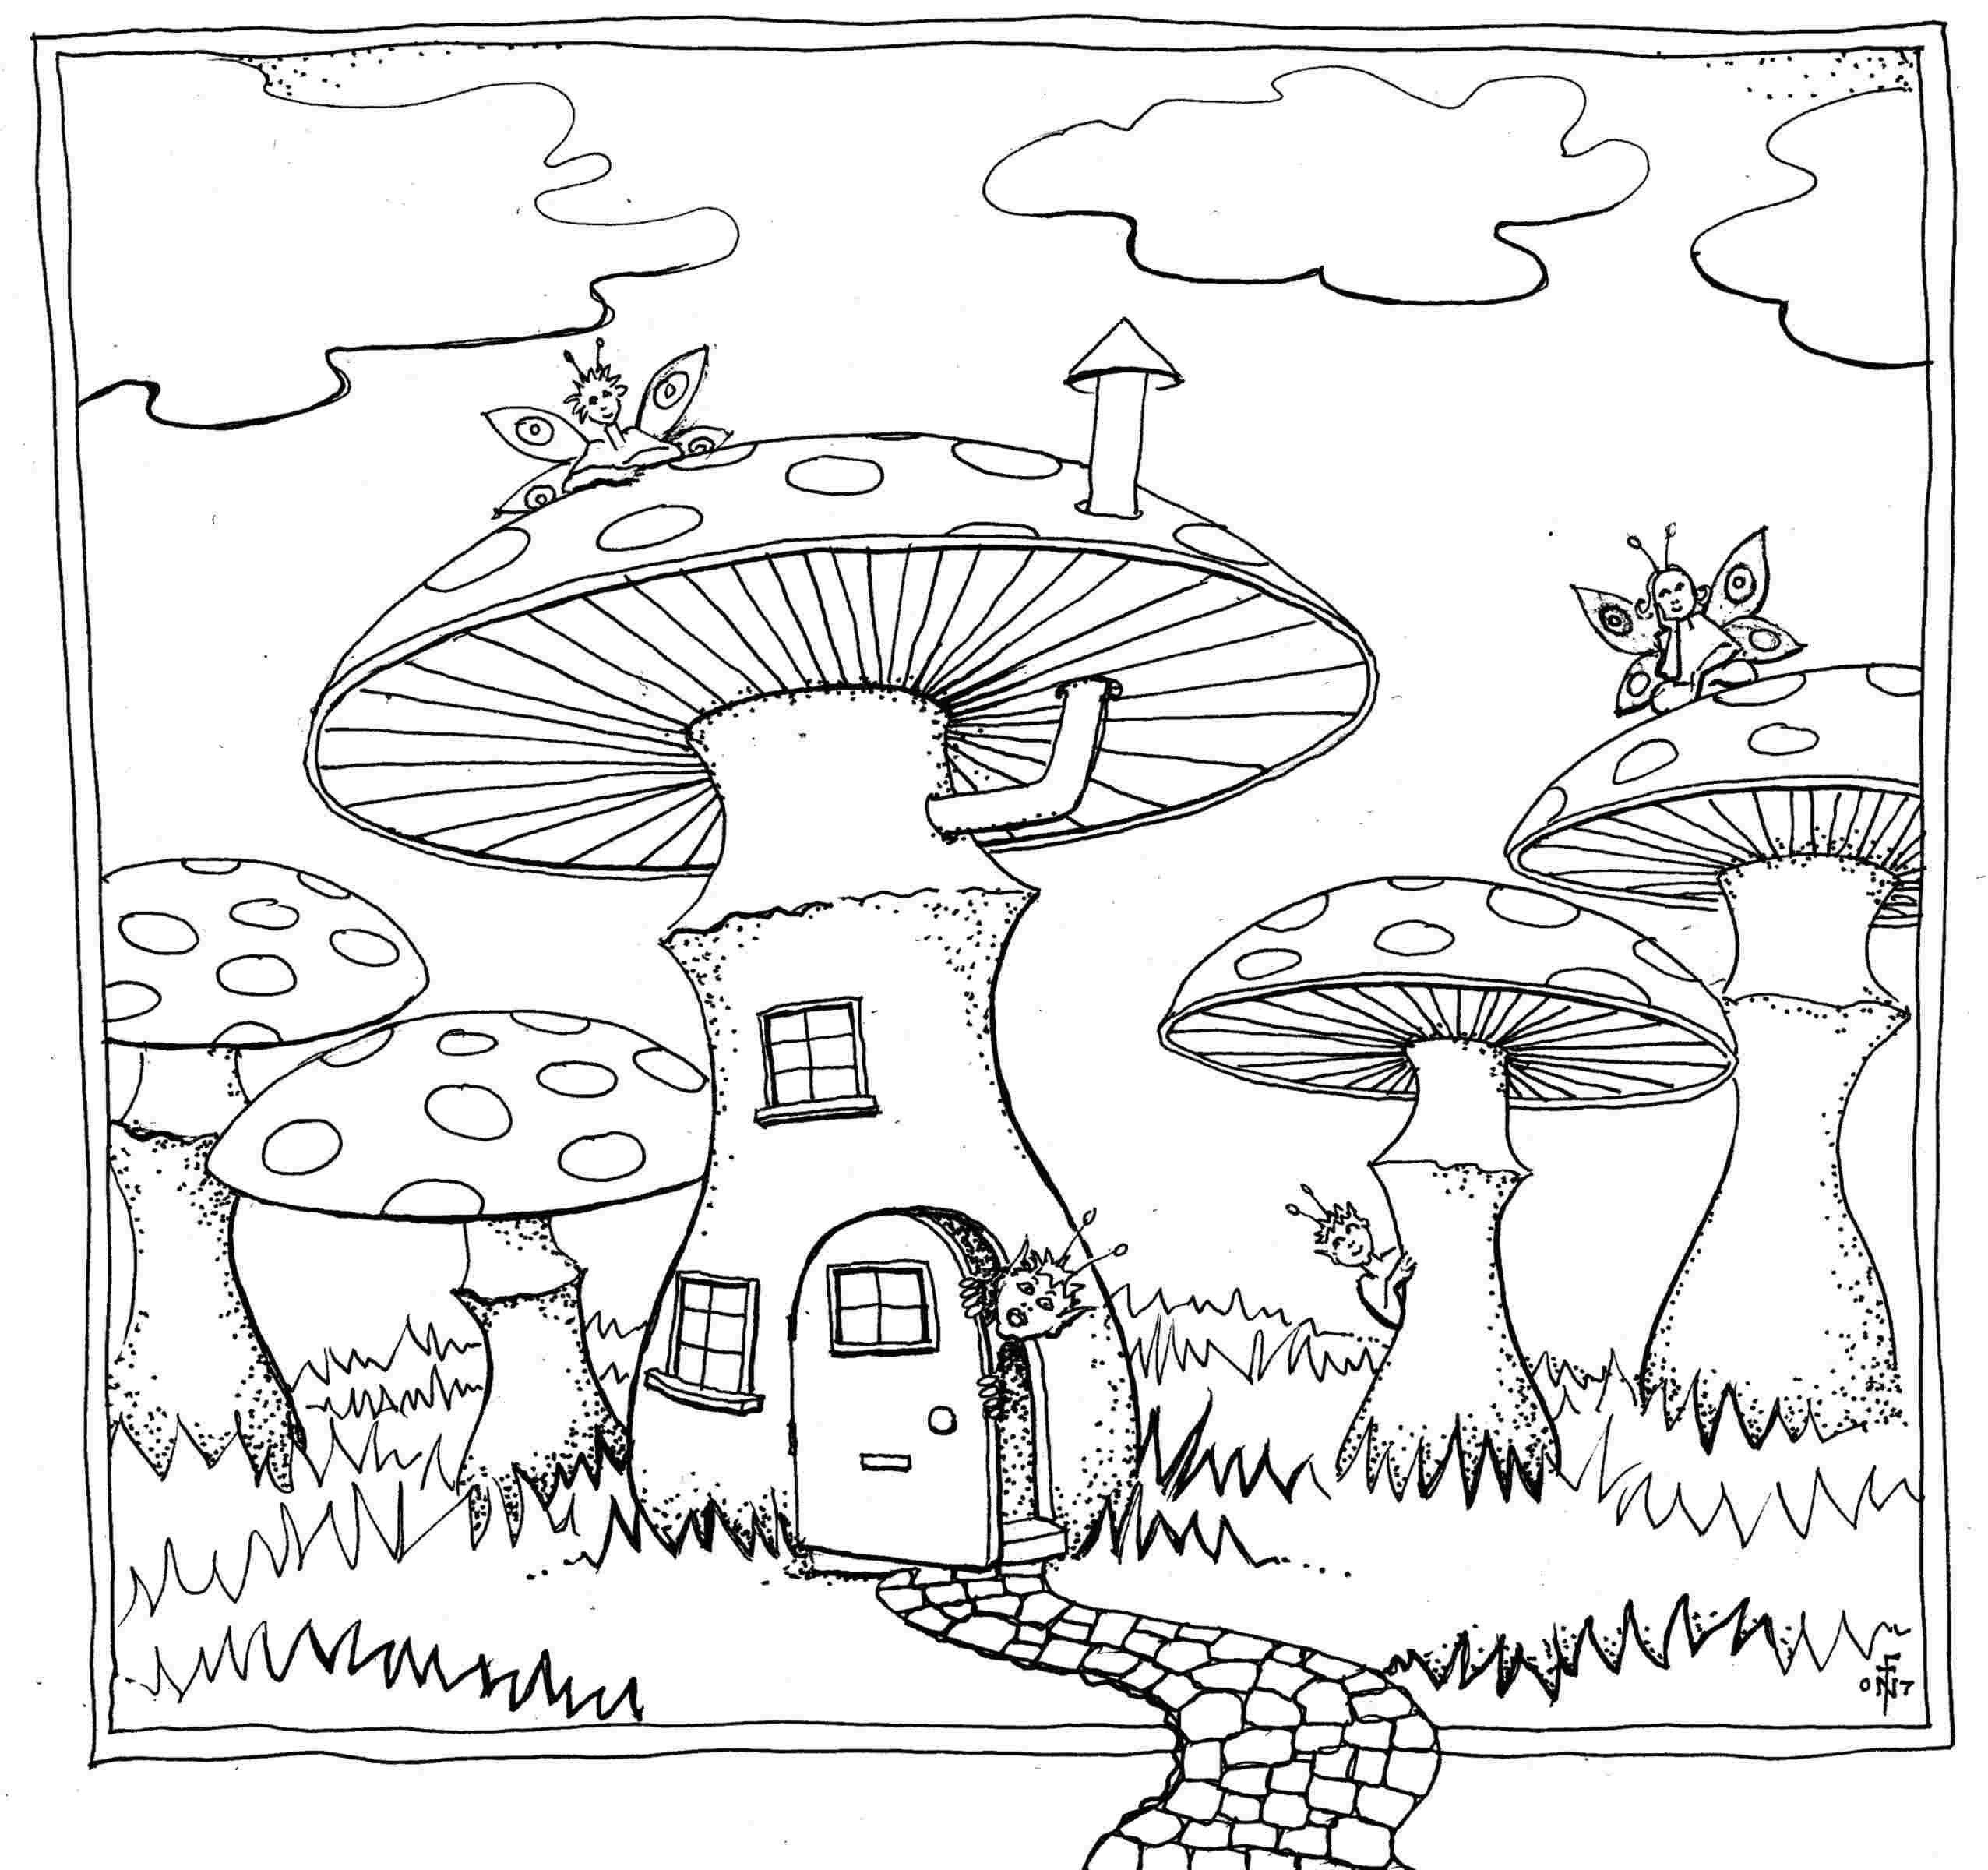 Litablod Space Coloring Pages Coloring Pages Drawing Pictures For Colouring